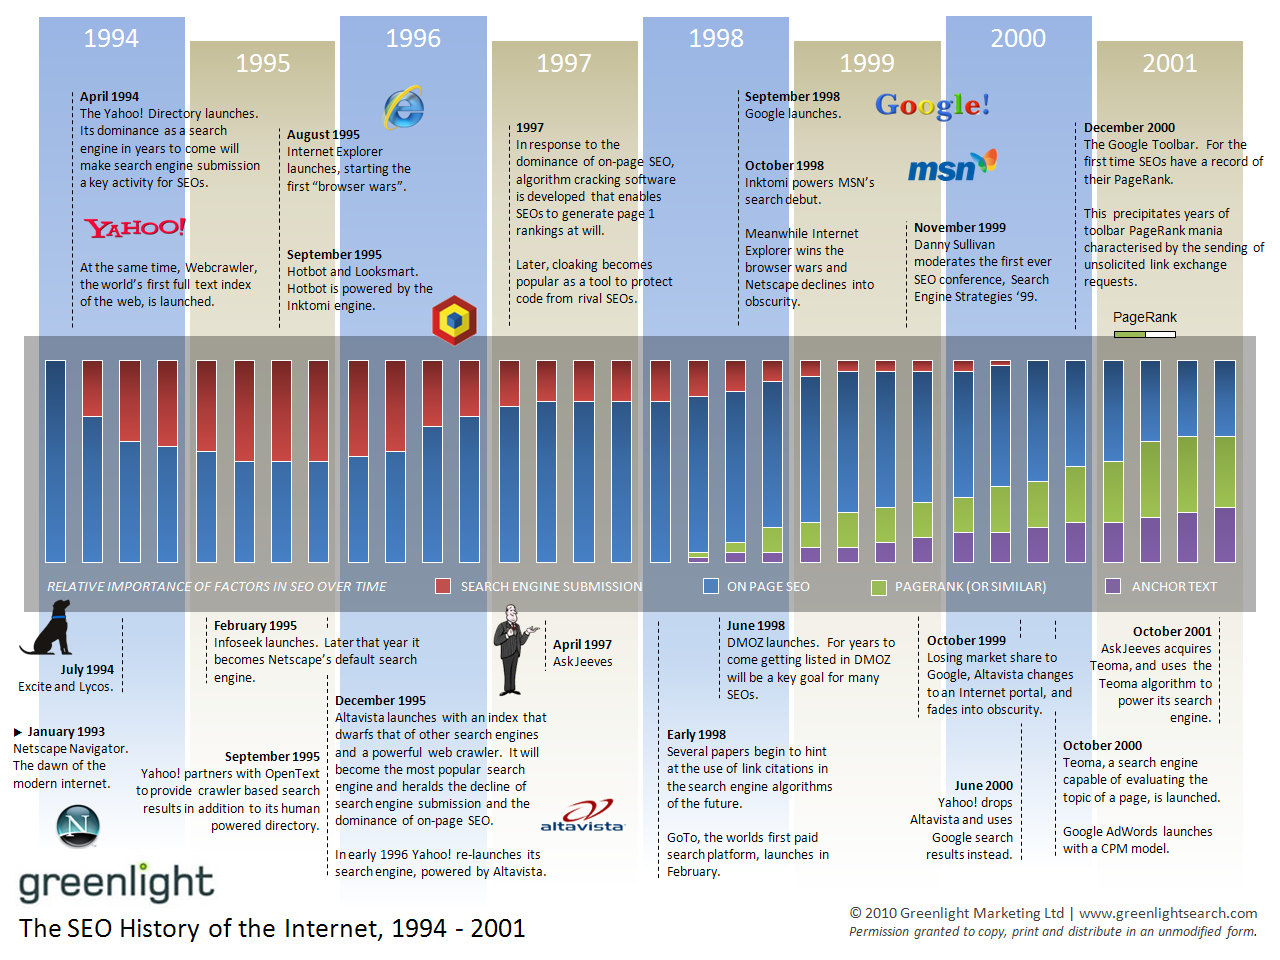 Greenlight history of SEO 1994-2001